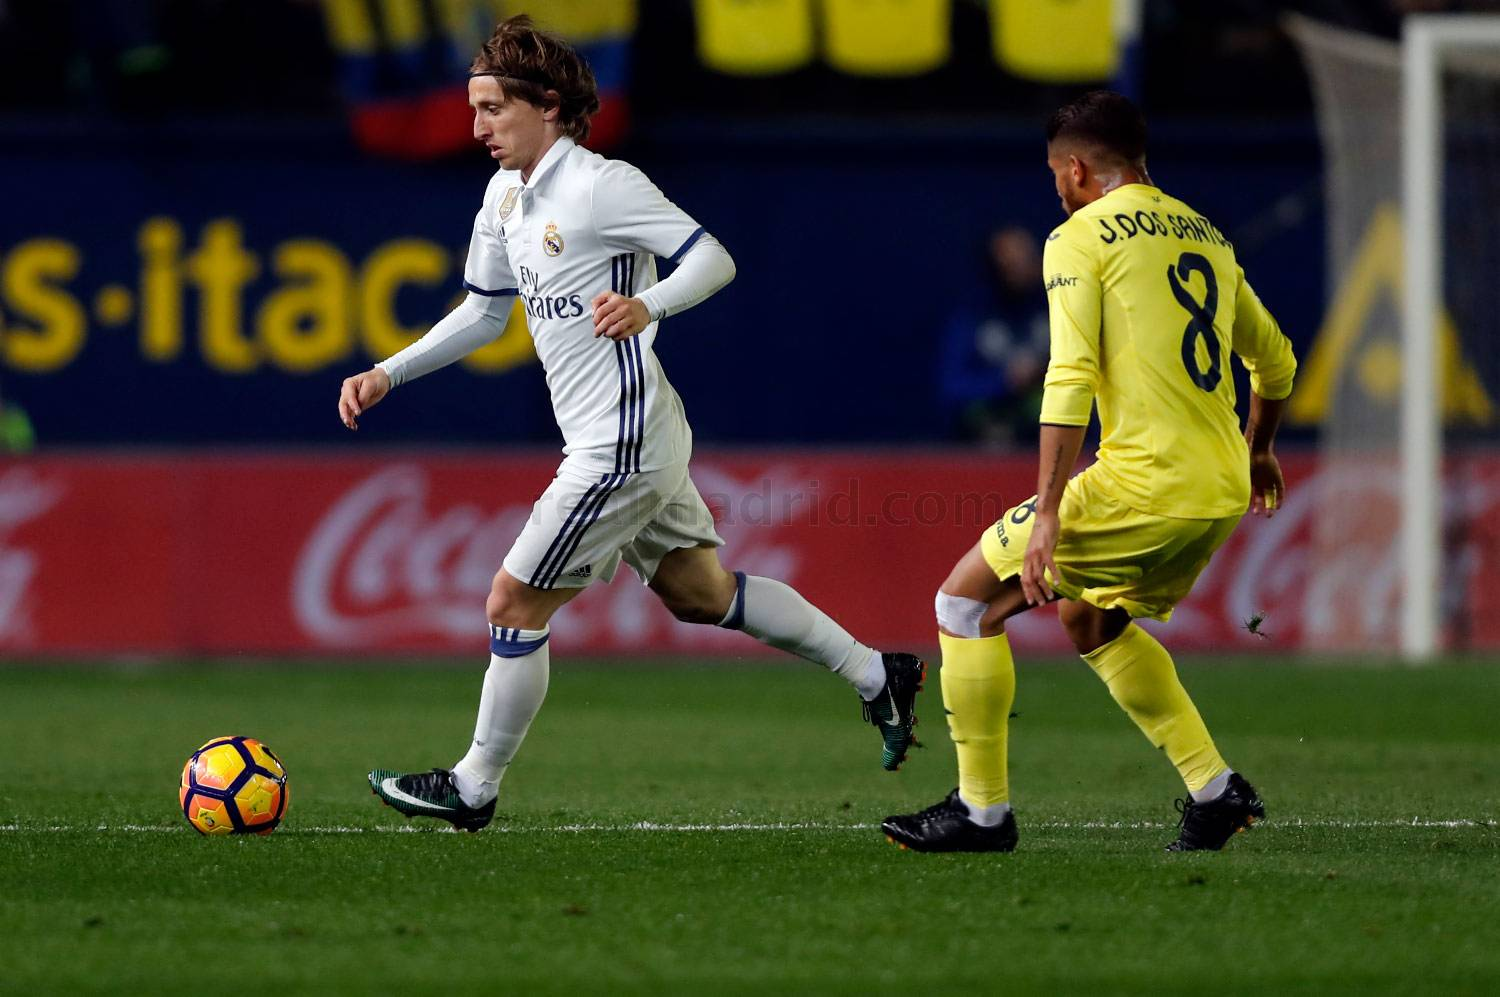 Real Madrid - Villarreal - Real Madrid - 26-02-2017